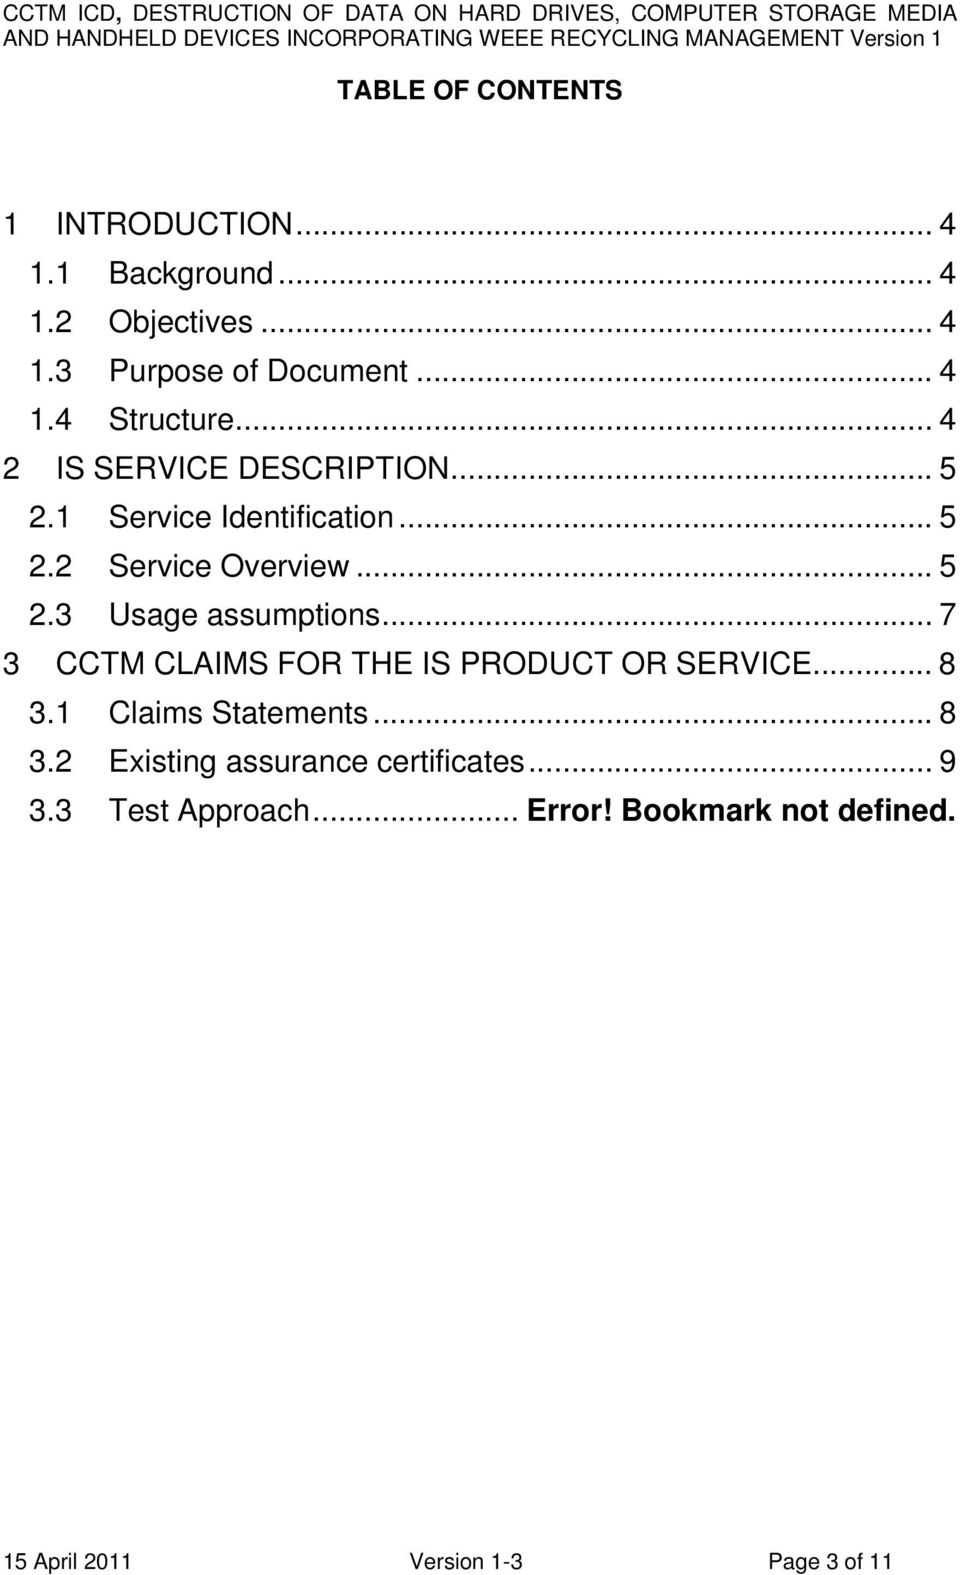 .. 7 3 CCTM CLAIMS FOR THE IS PRODUCT OR SERVICE... 8 3.1 Claims Statements... 8 3.2 Existing assurance certificates.